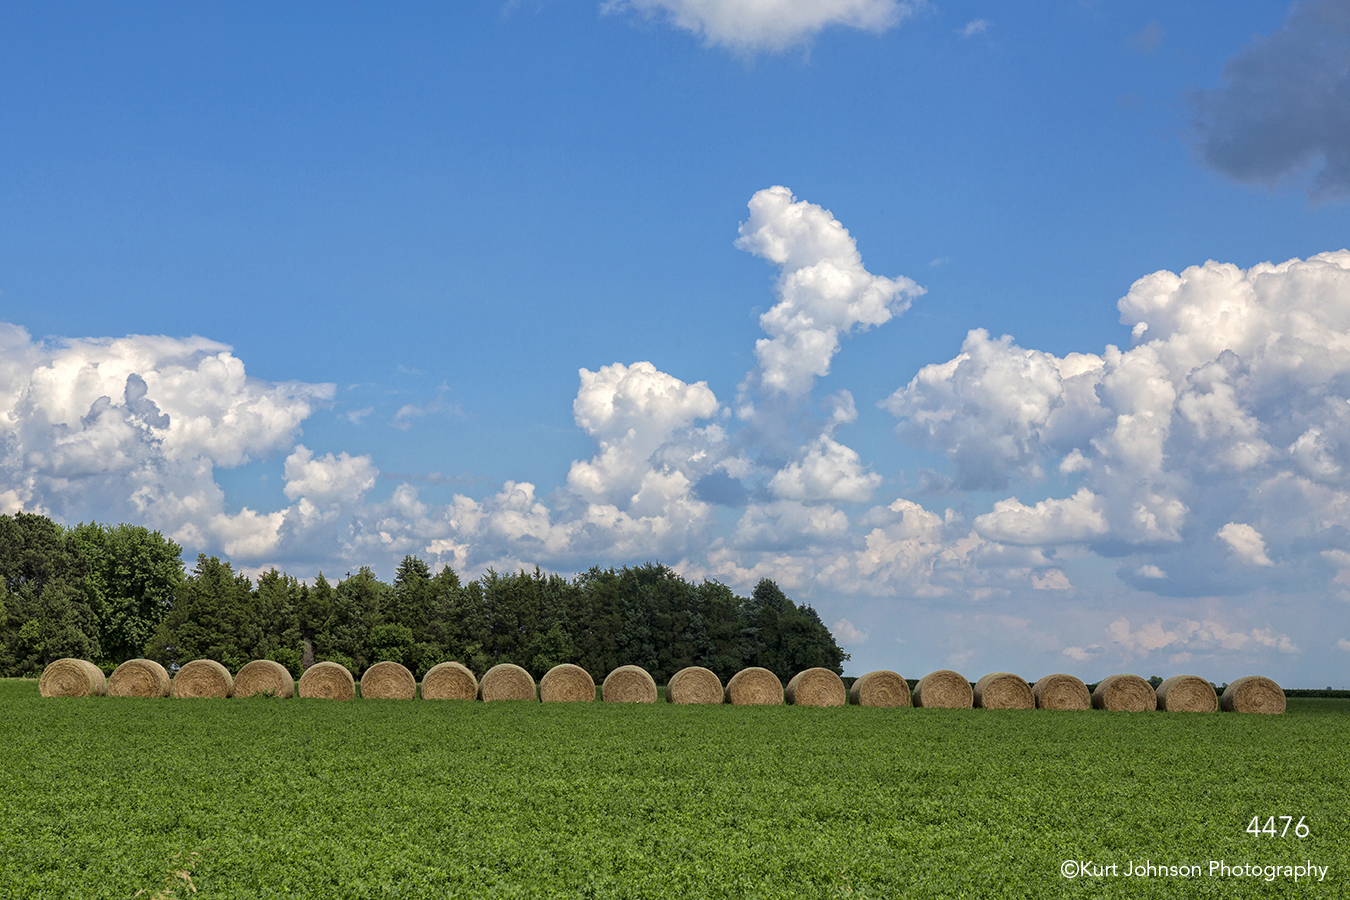 landscape clouds midwest hay rural pine trees